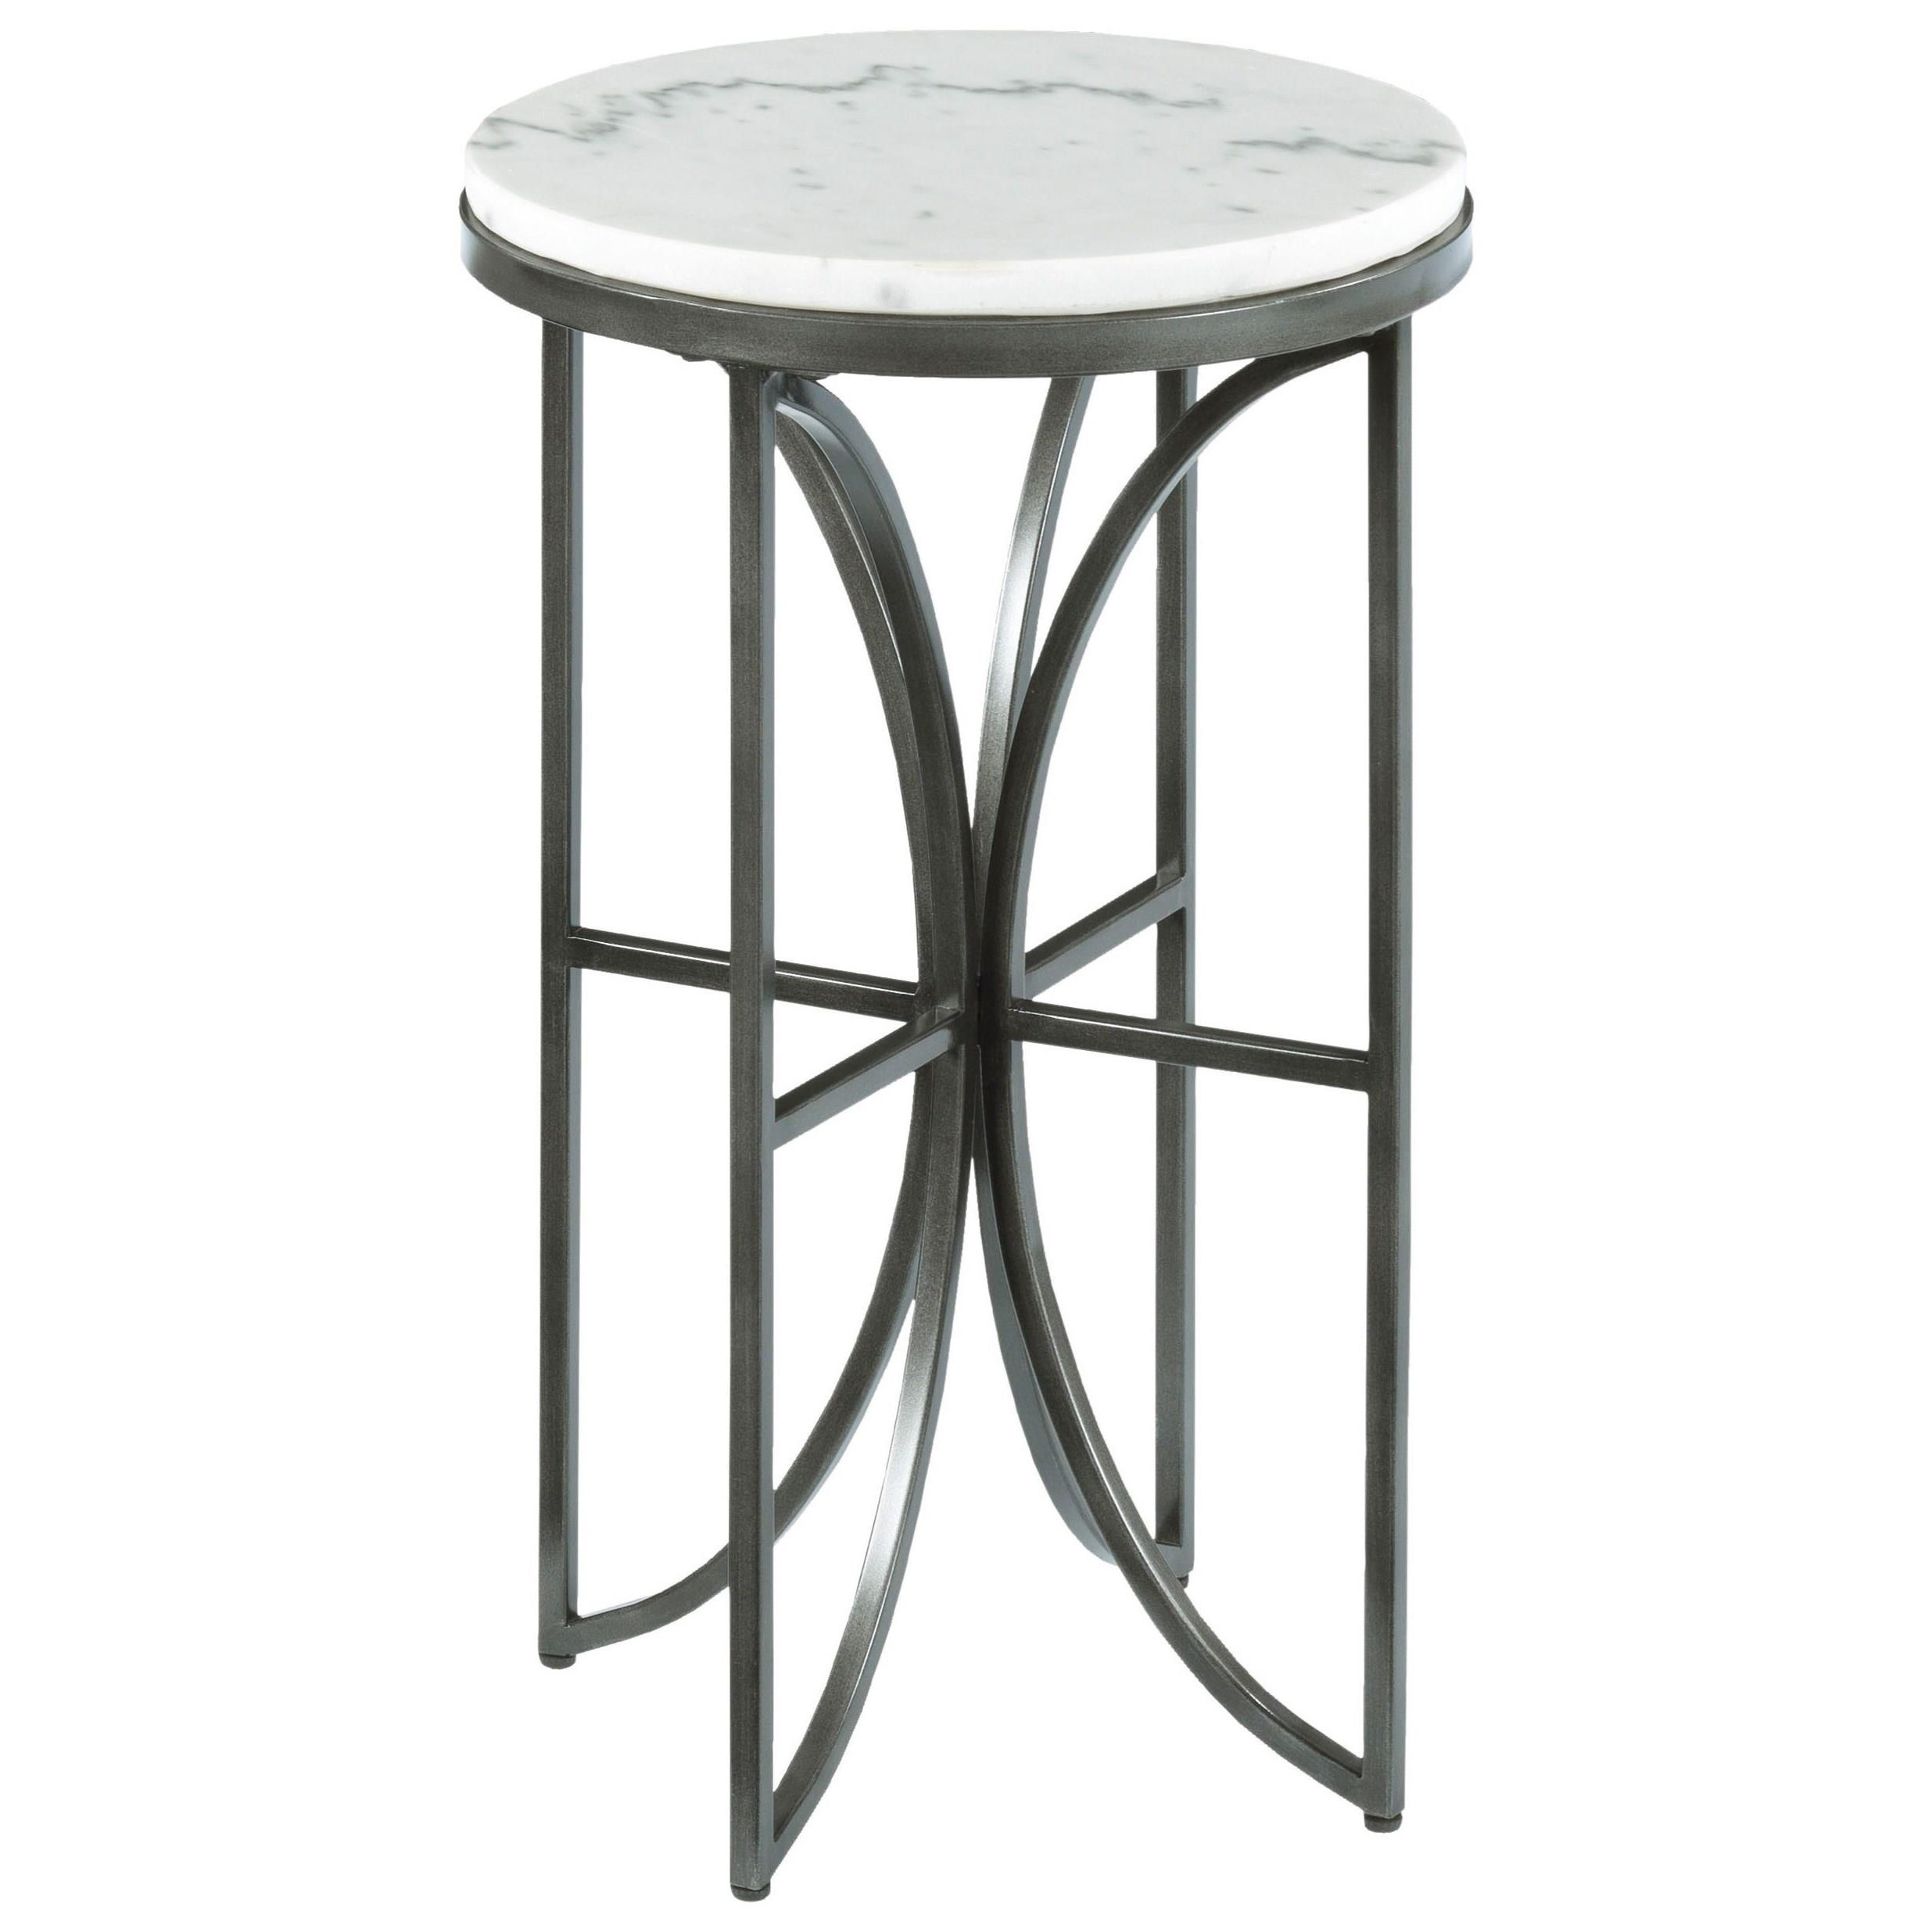 hammary impact small round accent table with marble top wayside products color end tables west elm mid century bedside brown wicker coffee black legs wood floor threshold counter